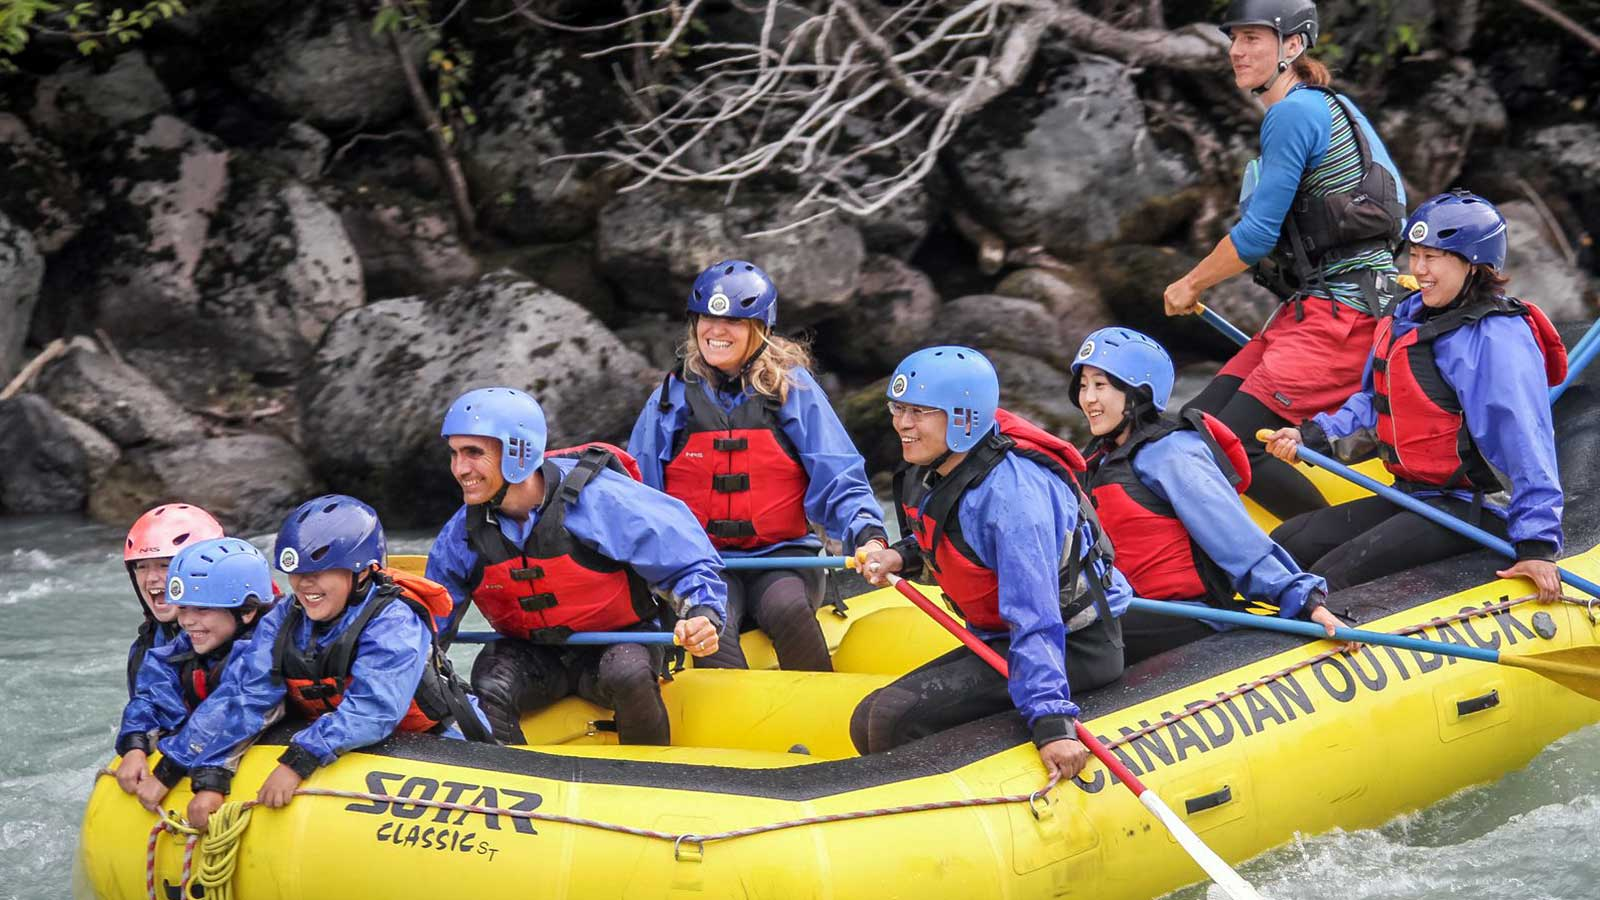 group of people river rafting in yellow boat